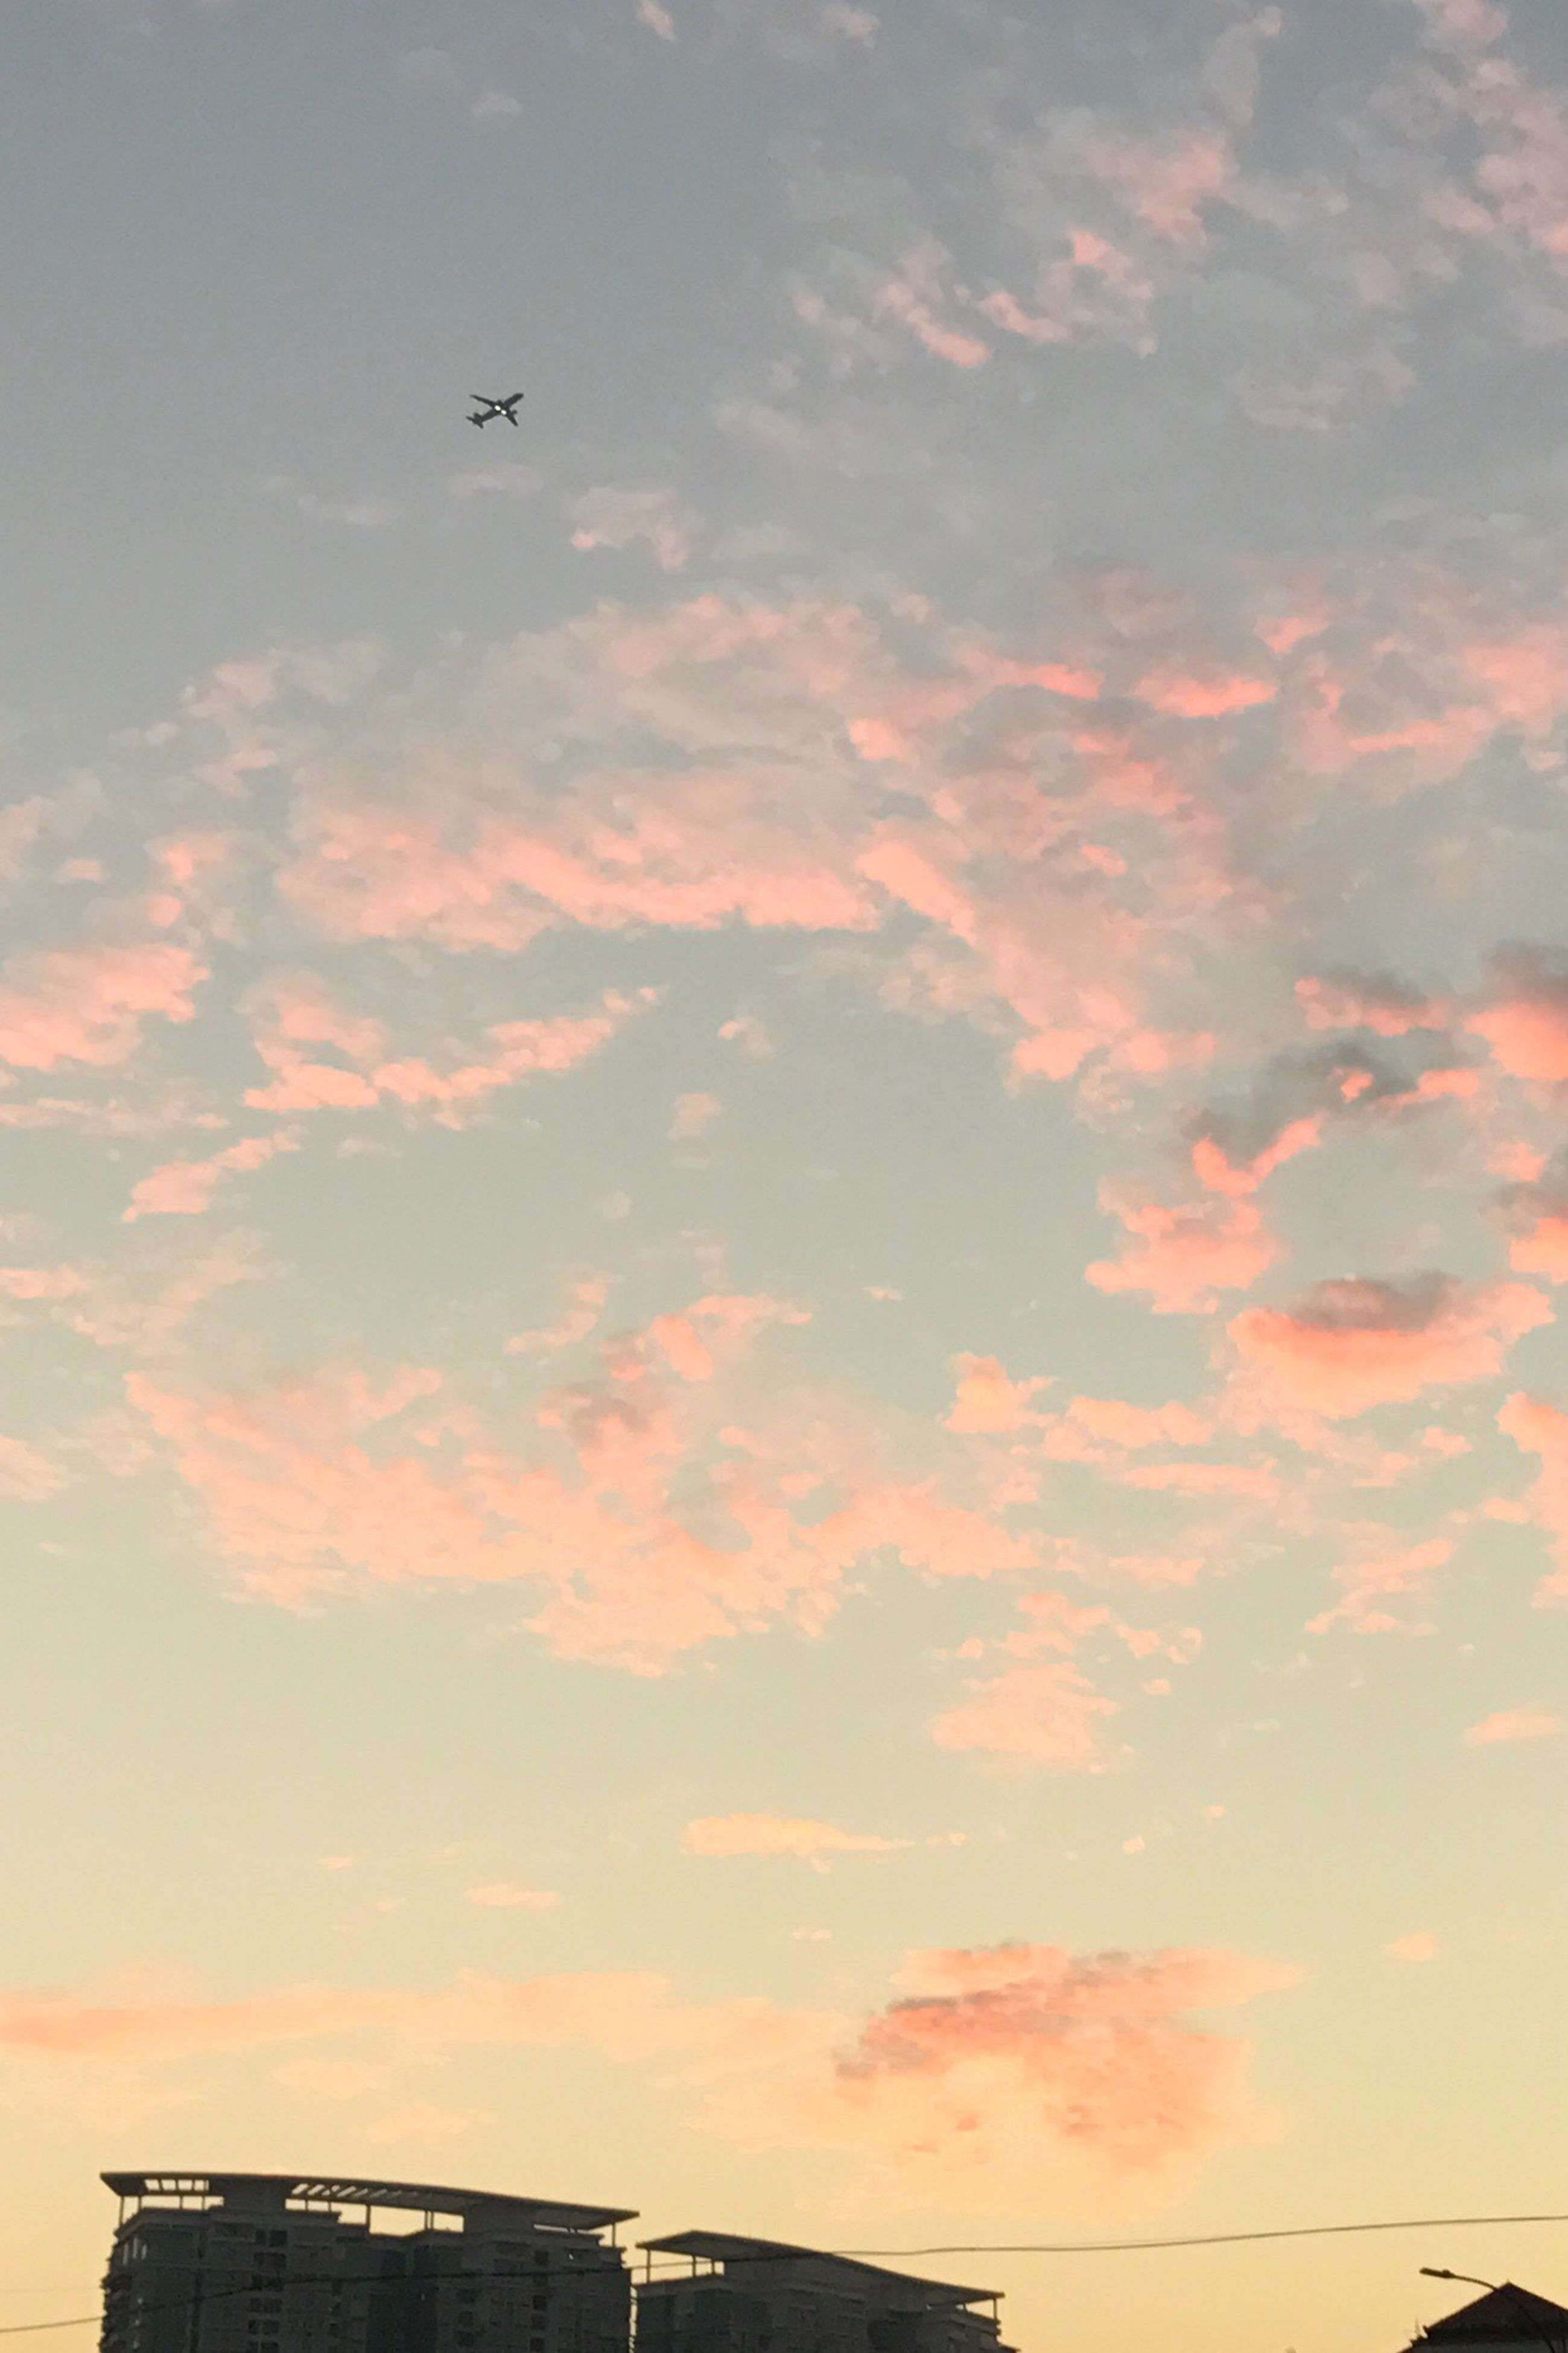 flying, sky, sunset, low angle view, no people, building exterior, airplane, cloud - sky, nature, silhouette, architecture, outdoors, beauty in nature, scenics, day